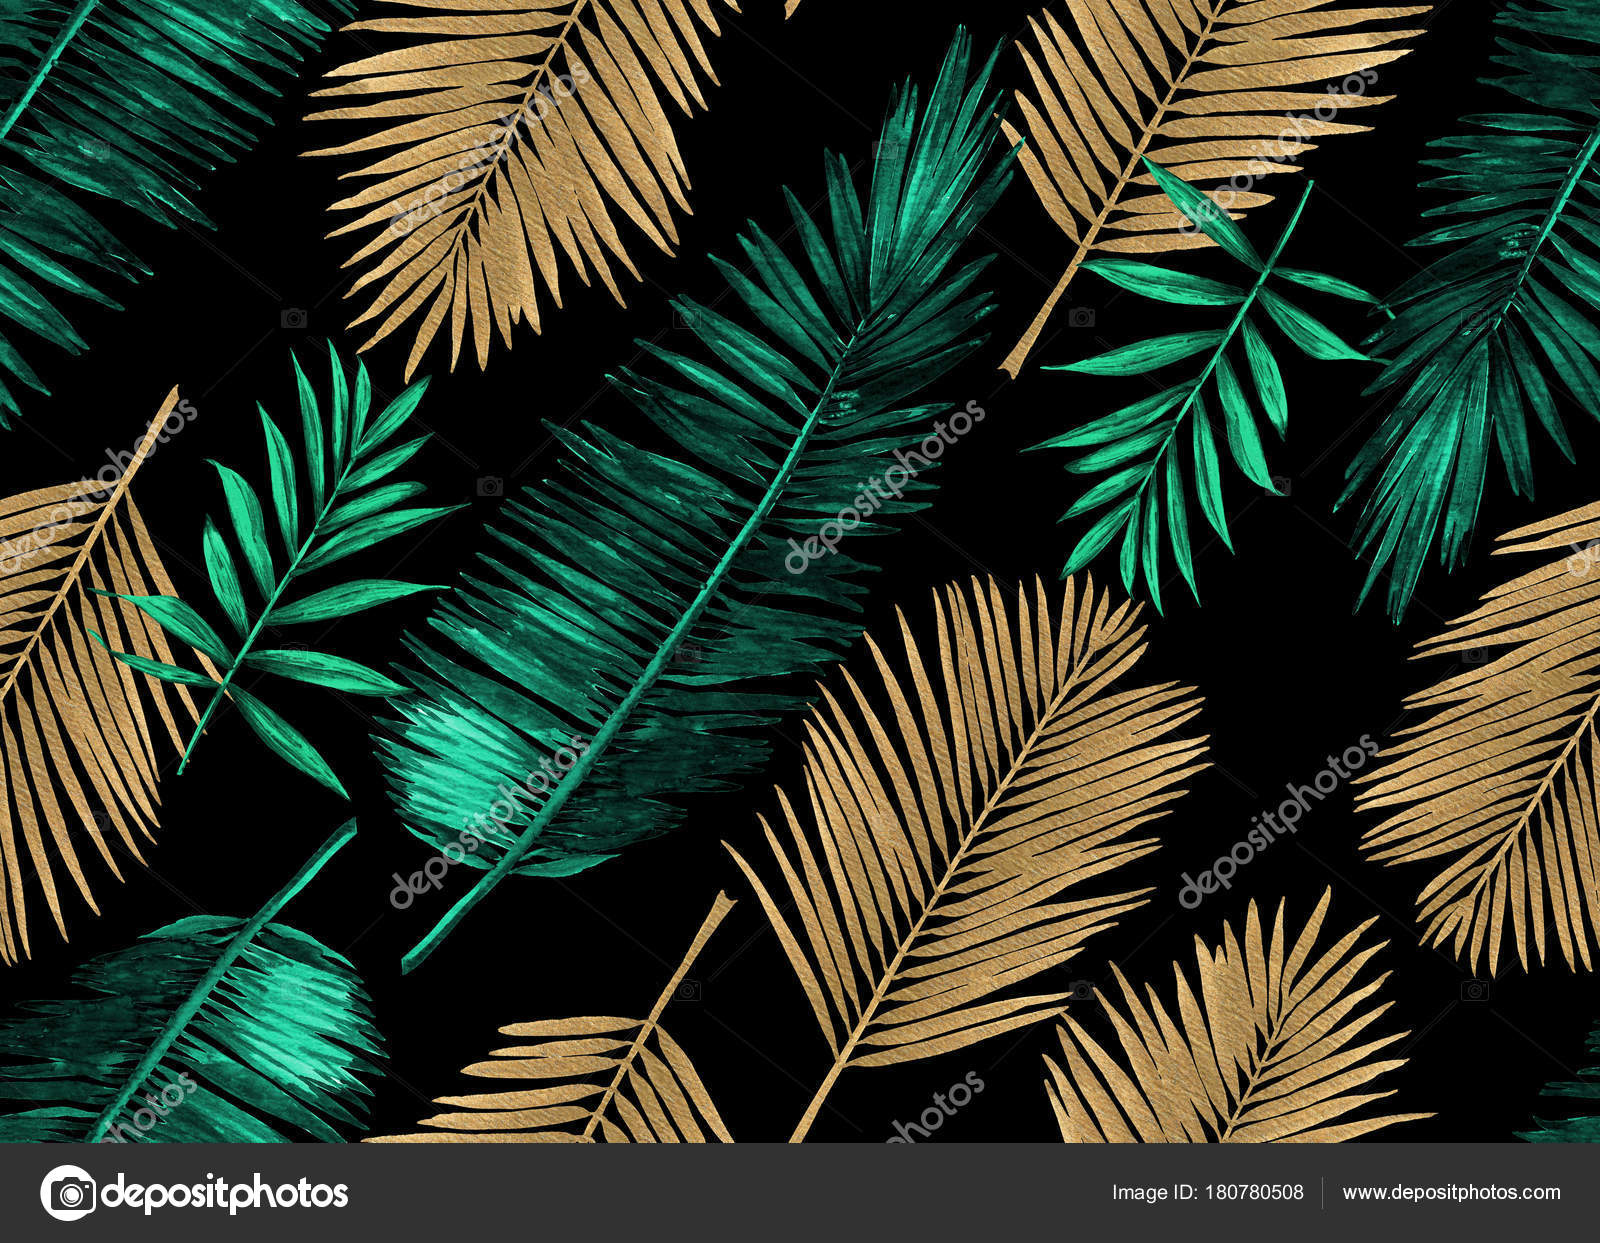 Seamless Watercolor Floral Pattern With Stylized Palm Leaves Jungle Foliage Emerald Green And Gold Metallic On Black Background Textile Design